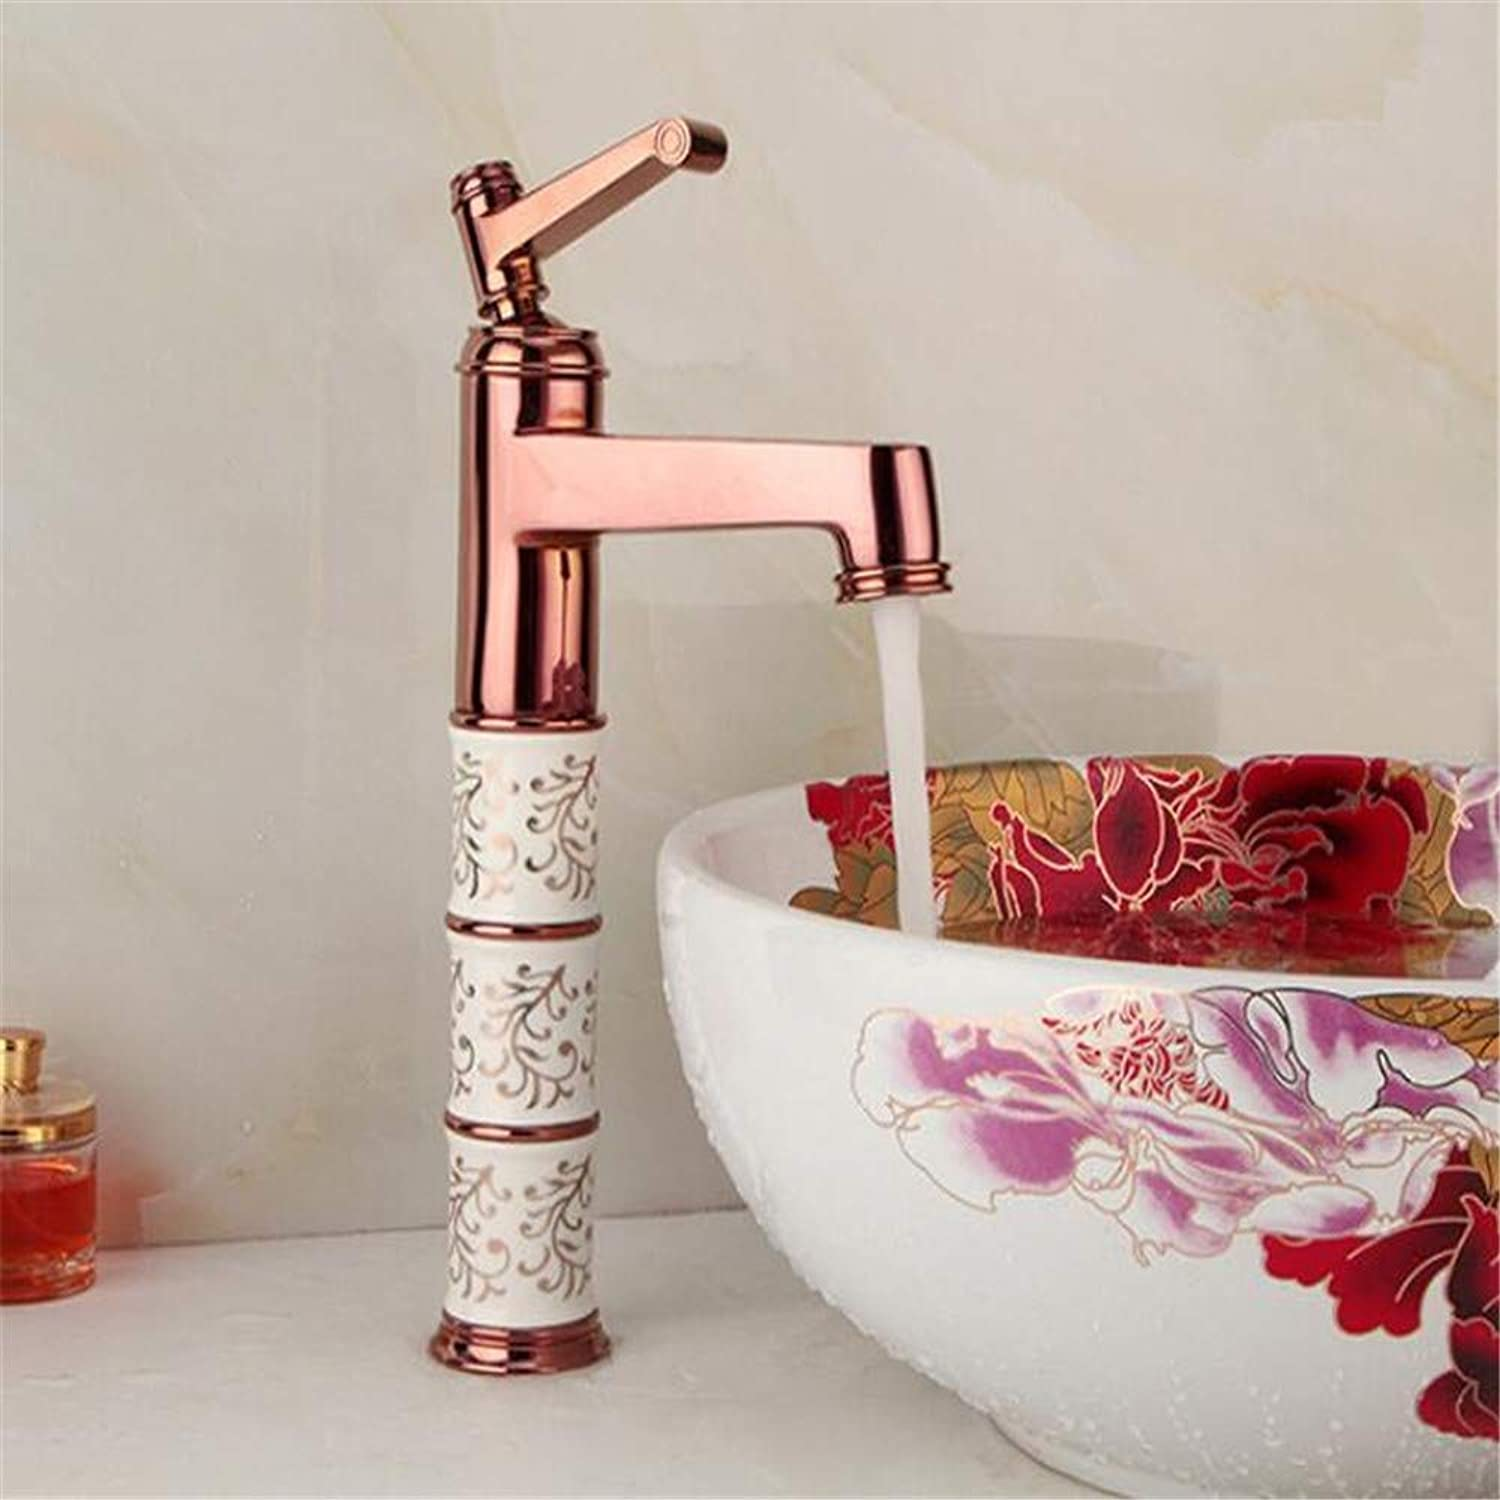 Faucetbasin Mixer Tap European Faucets All Copper Mixed Water Faucets pink gold Cold and Hot Single Hole Faucet Household Basin Faucet.